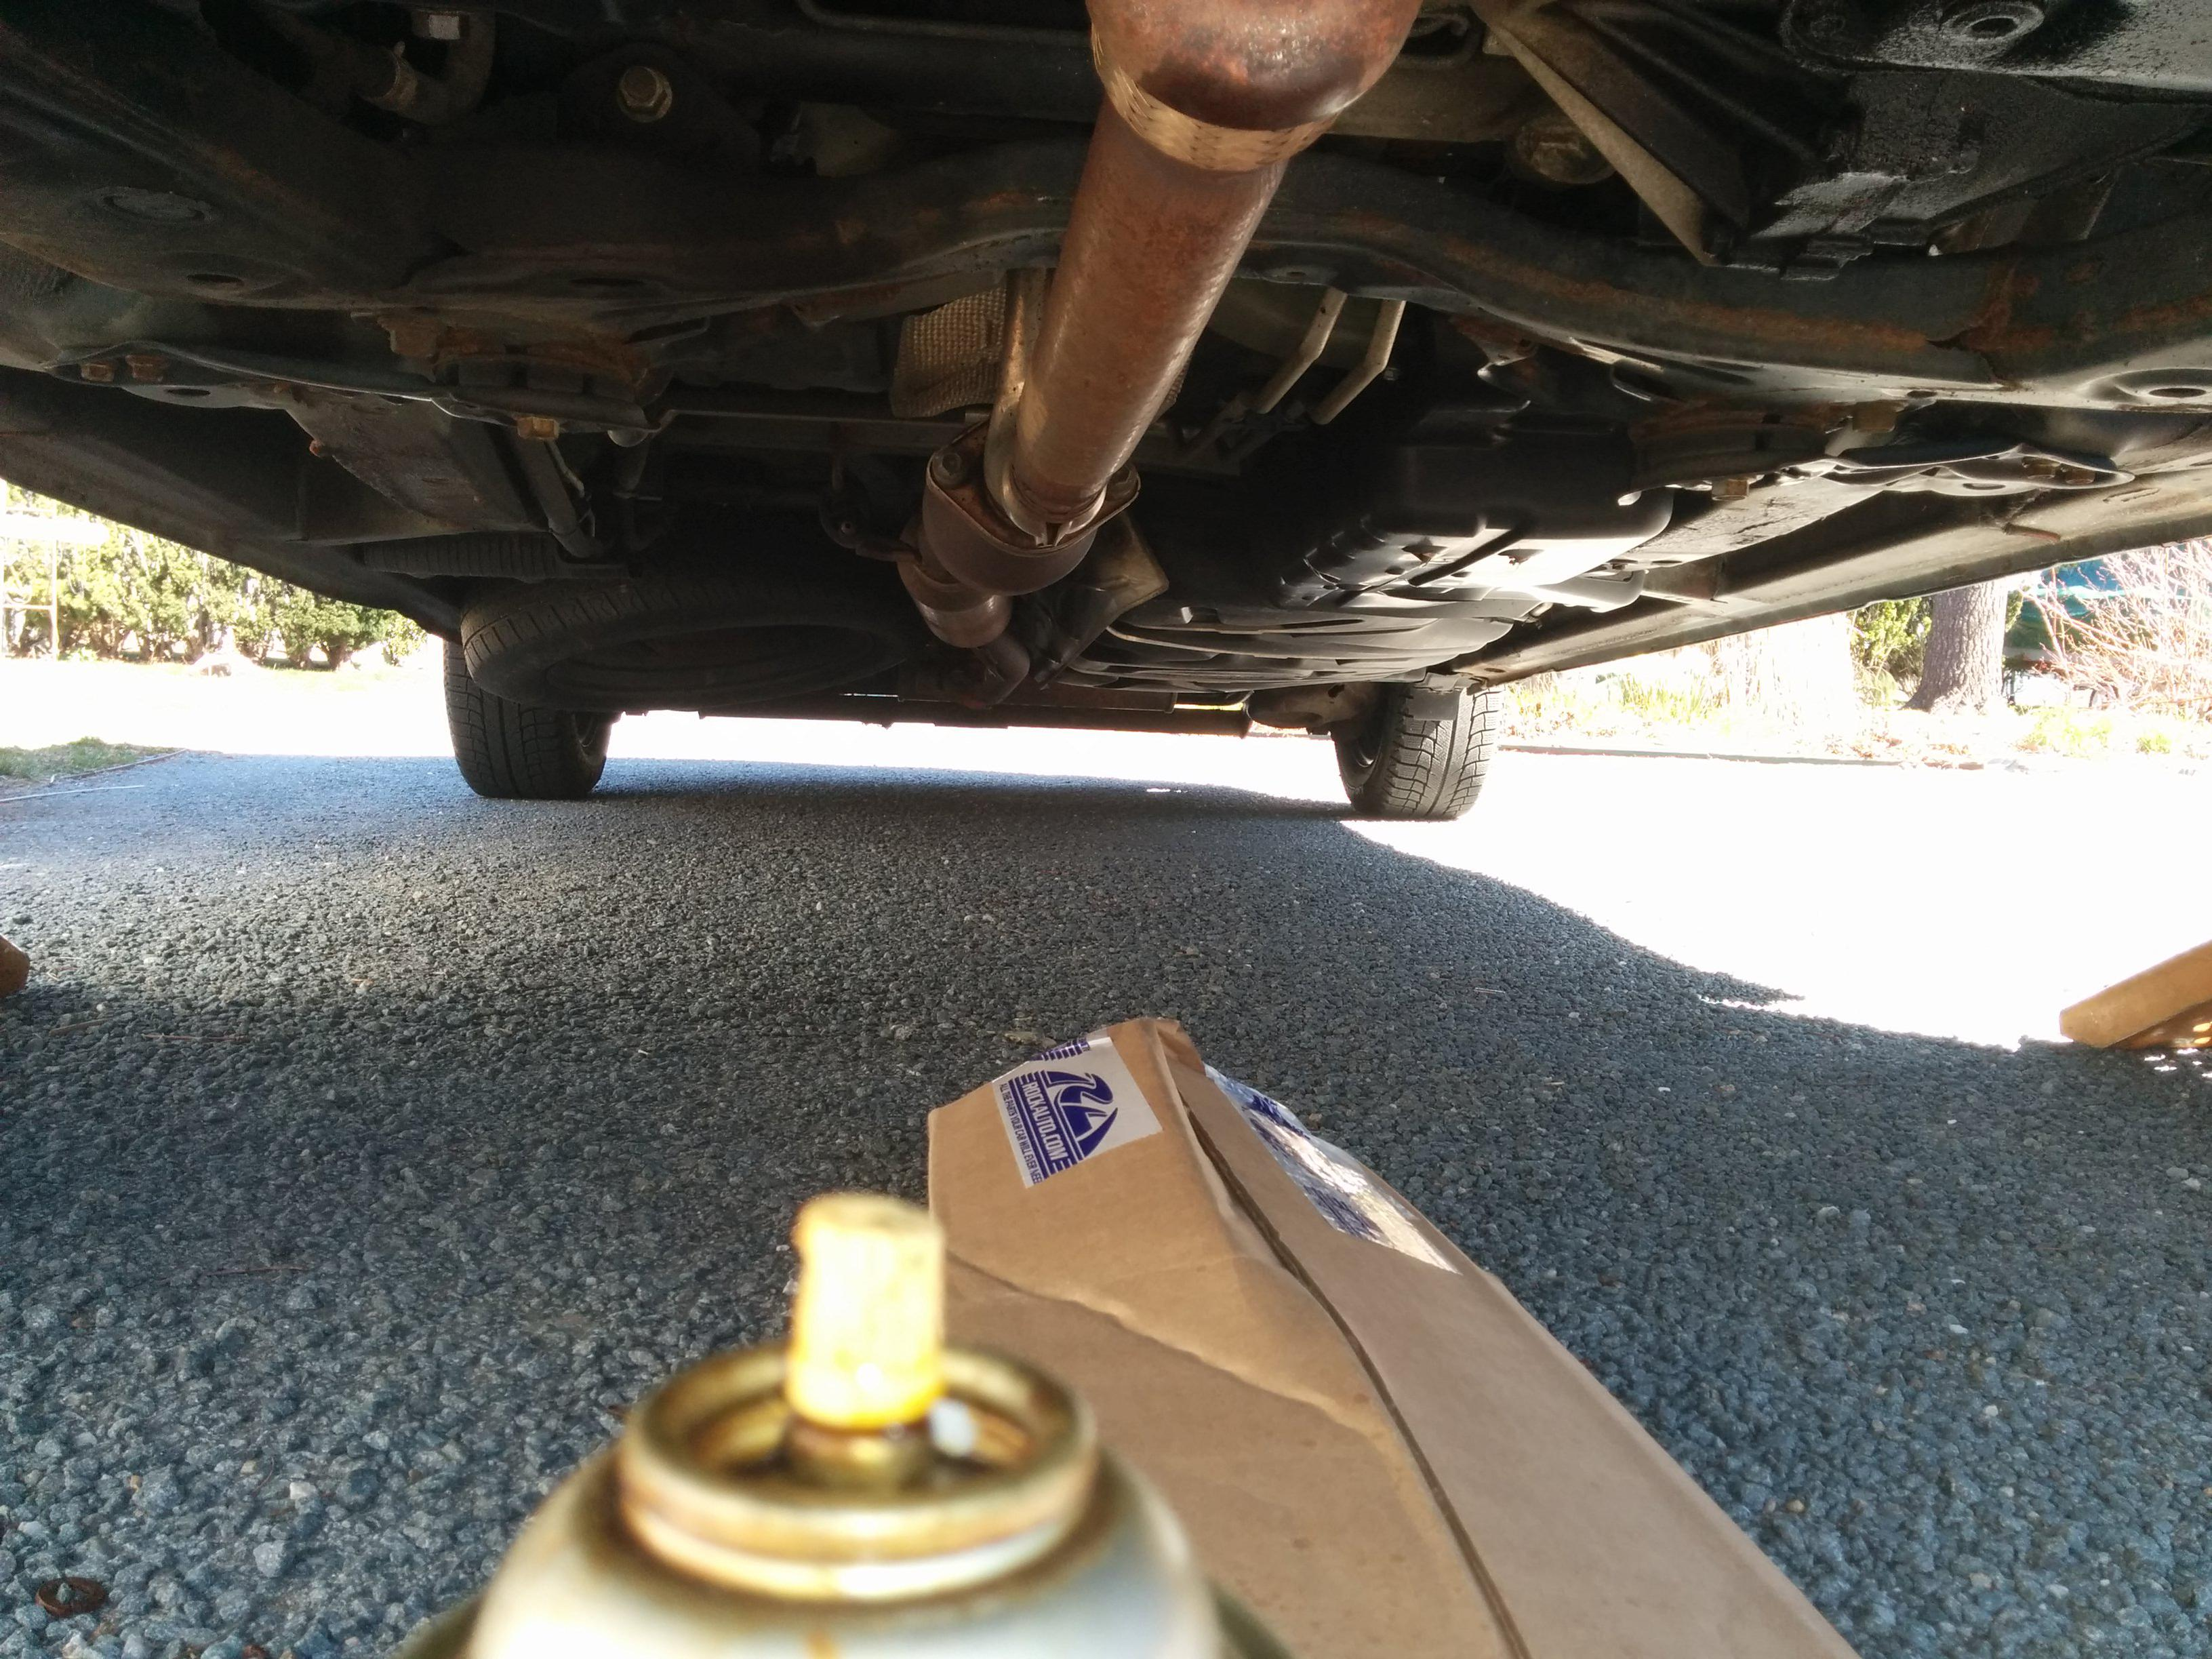 Pic as well Oxygen Sensors Cat X moreover Maxresdefault furthermore D Bank Sensor P Fix Img furthermore Cat Location. on 2004 toyota sienna catalytic converter location